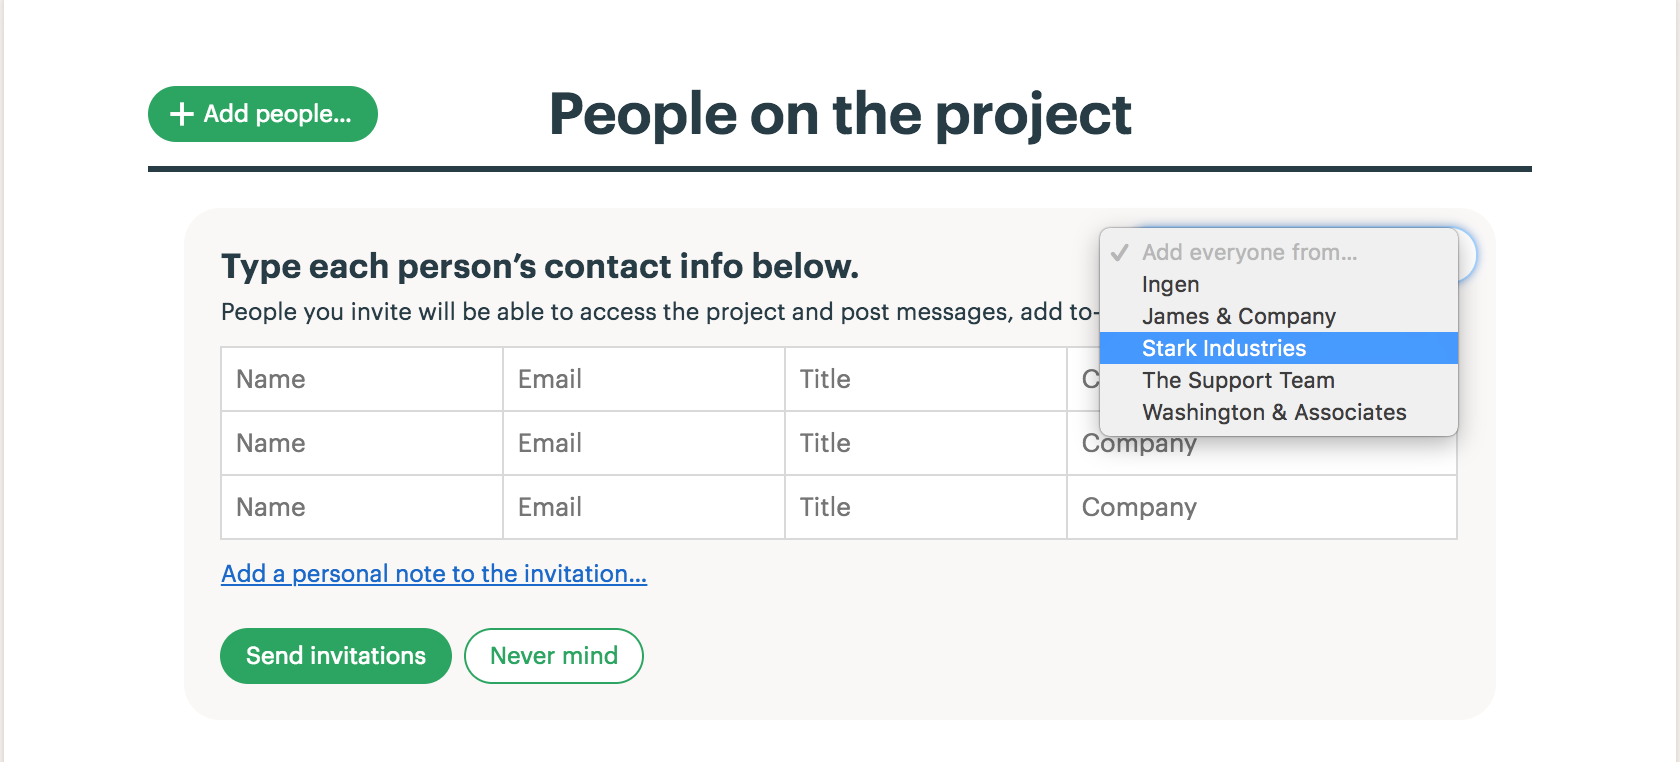 Inviting people to a project basecamp 3 help any members of that company who werent already on the project will now be shown in the list of people to invite youll have a chance to adjust the list stopboris Choice Image